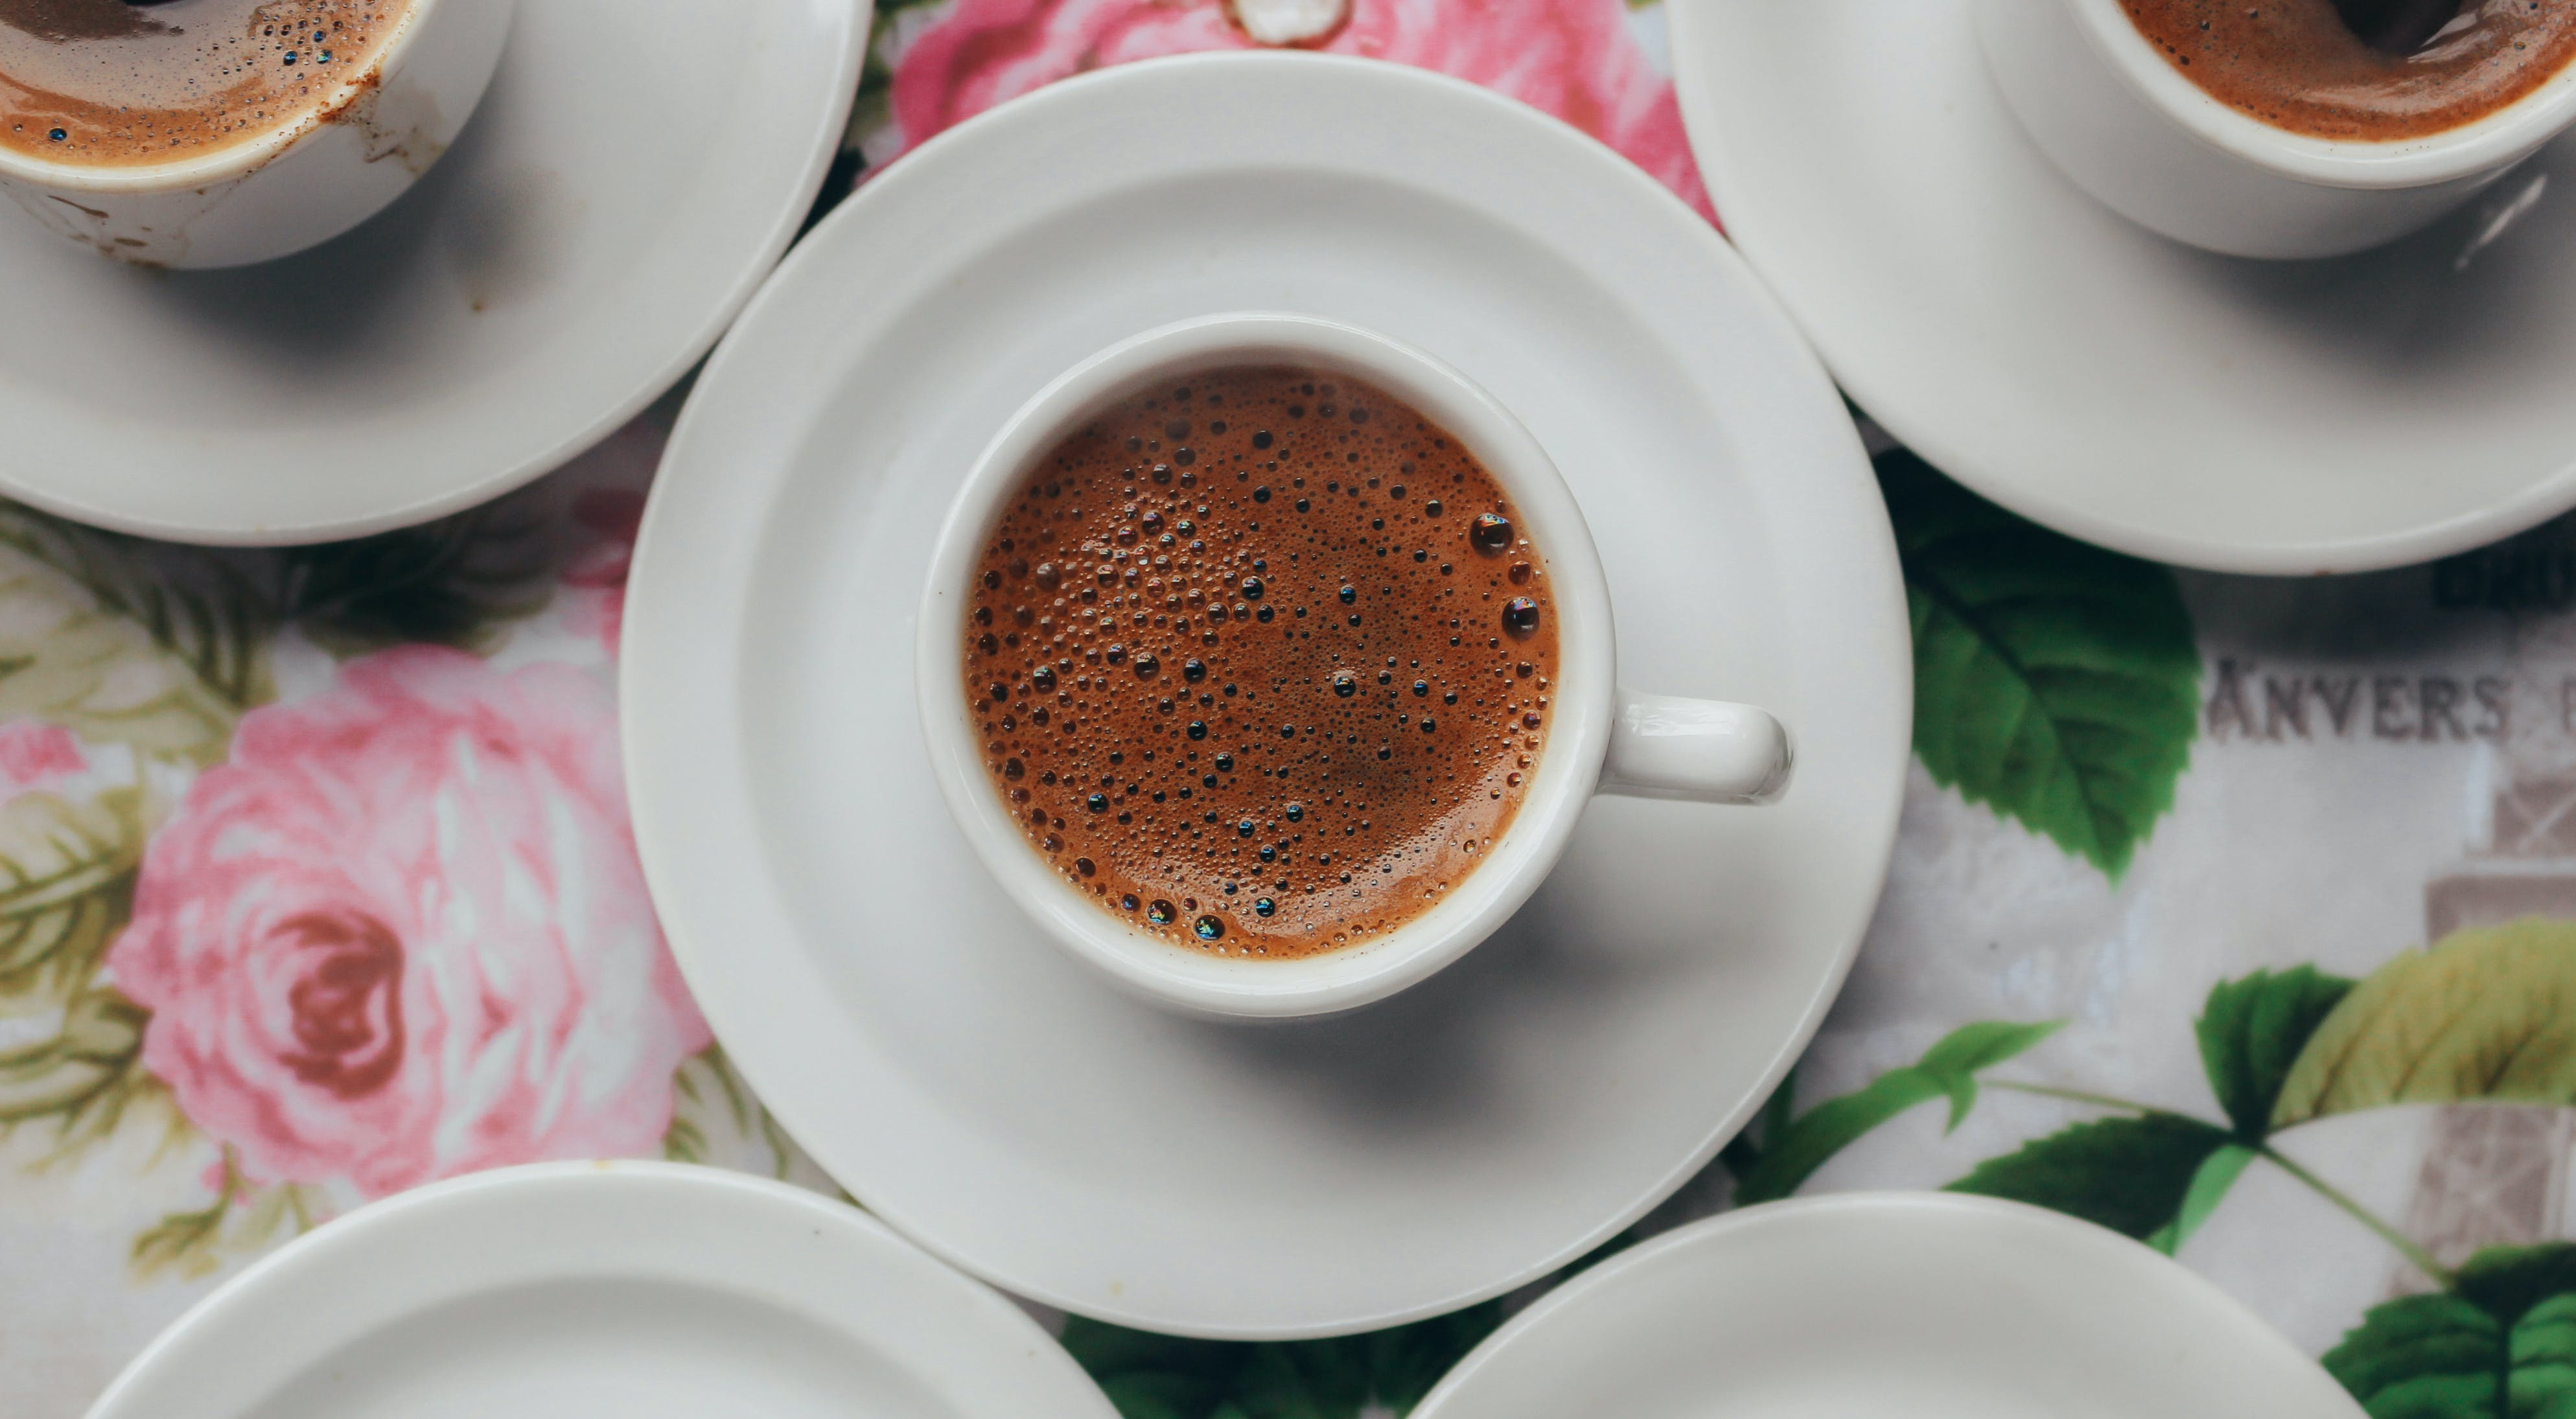 Top View Photo of Coffee